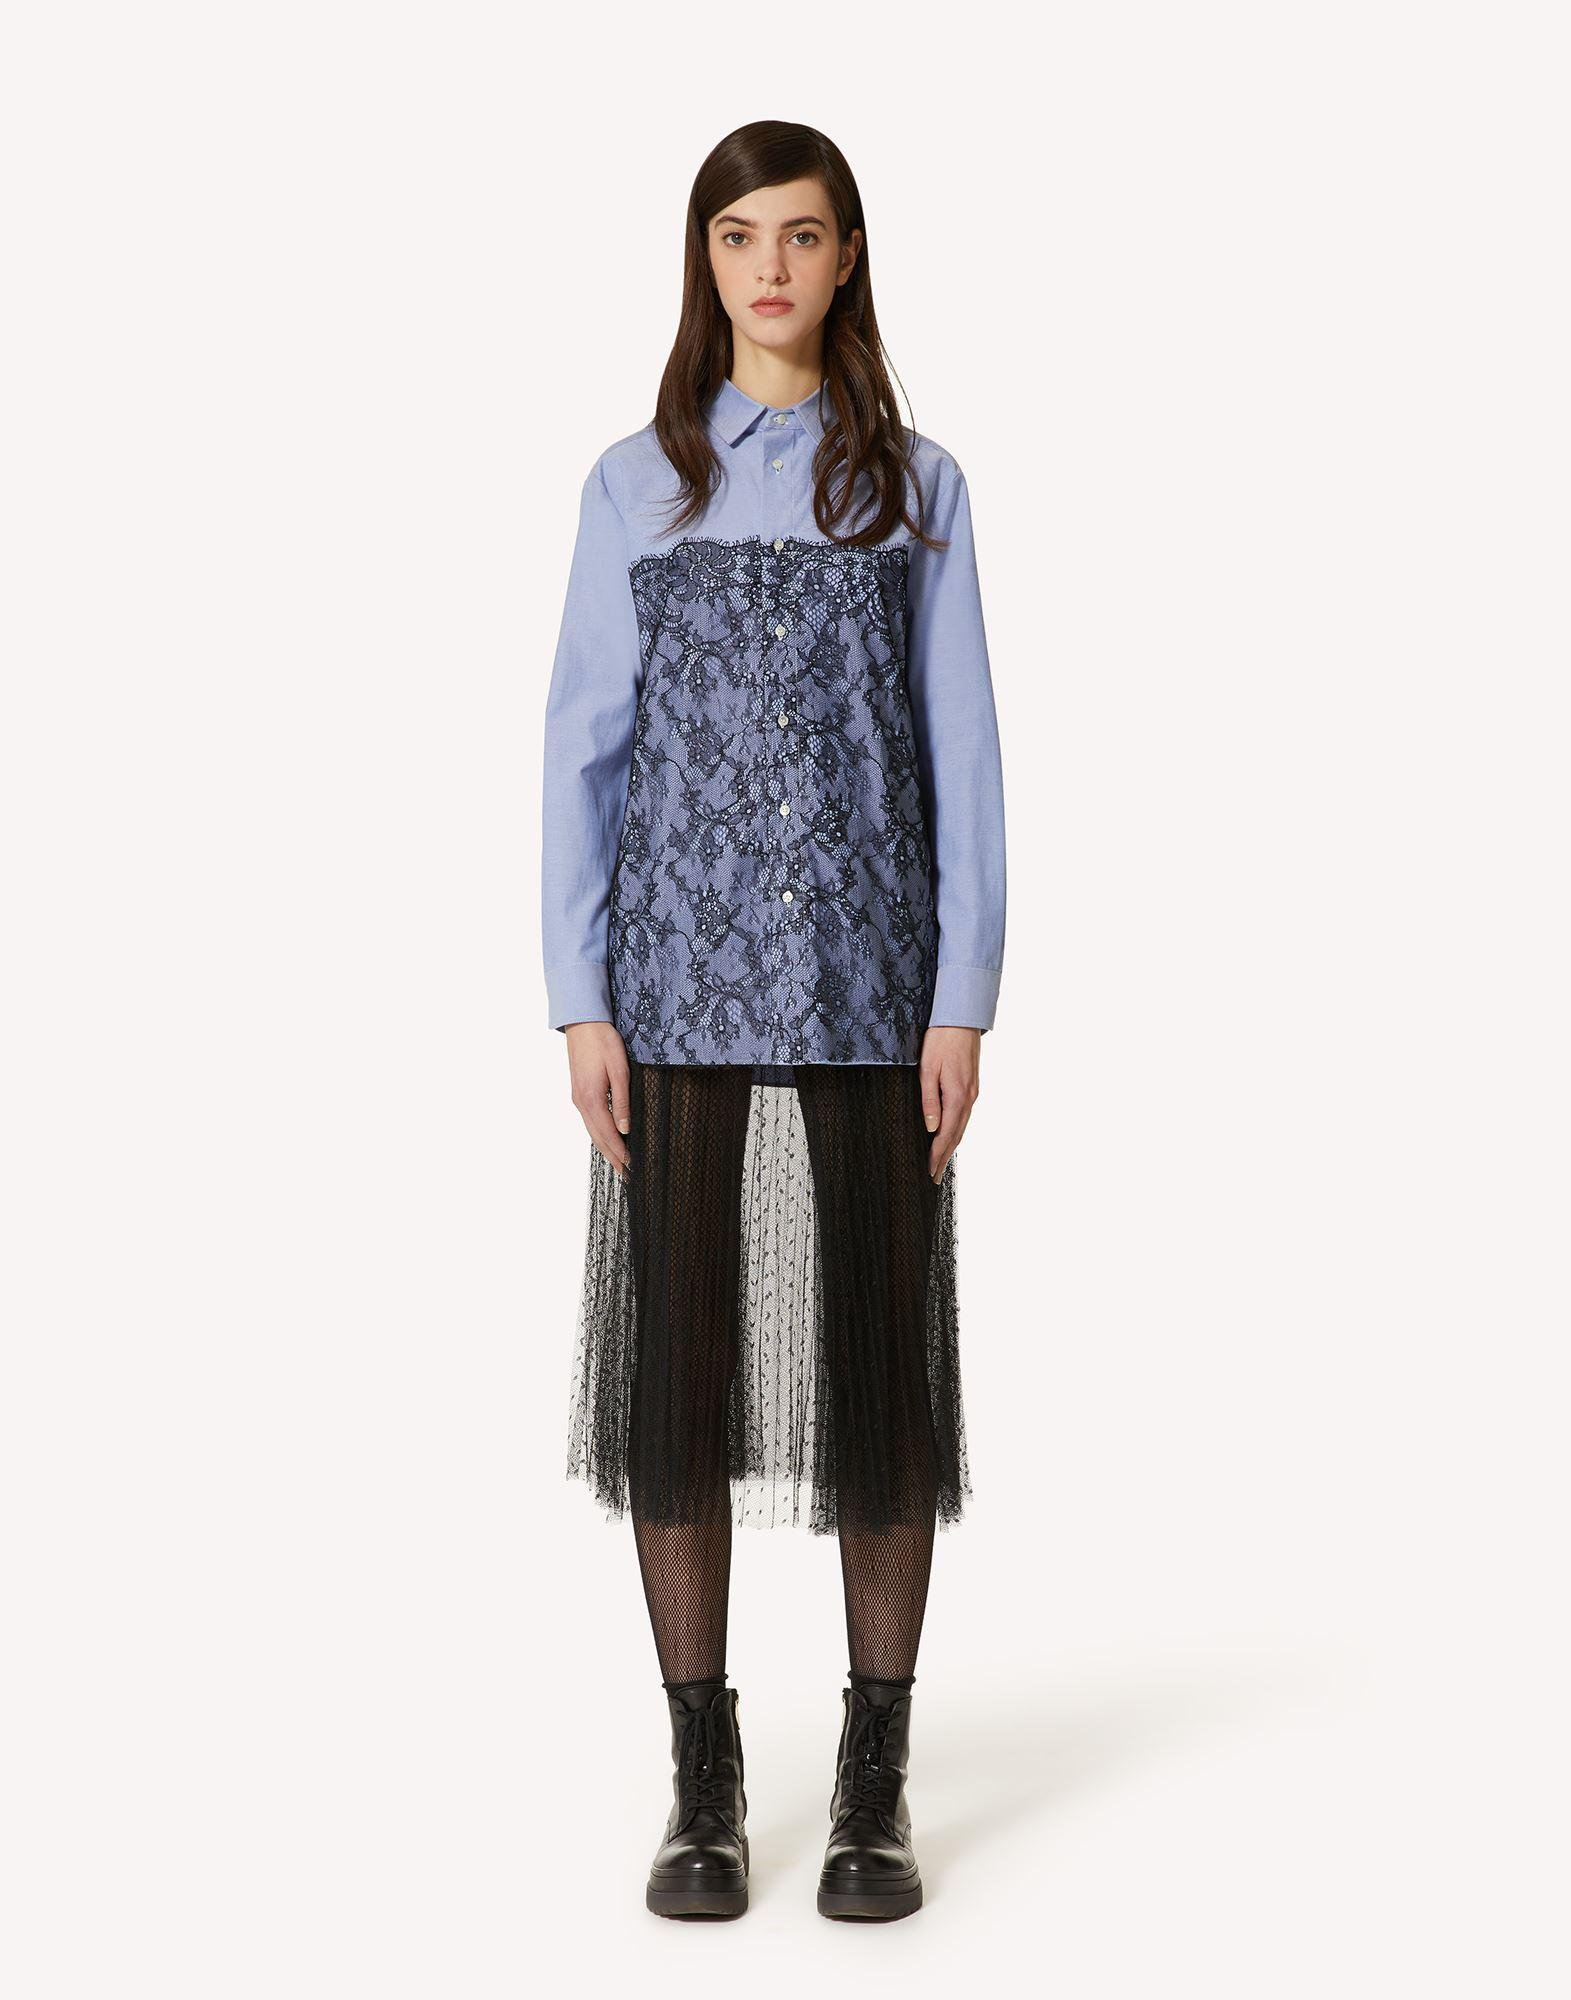 OXFORD SHIRT WITH LACE